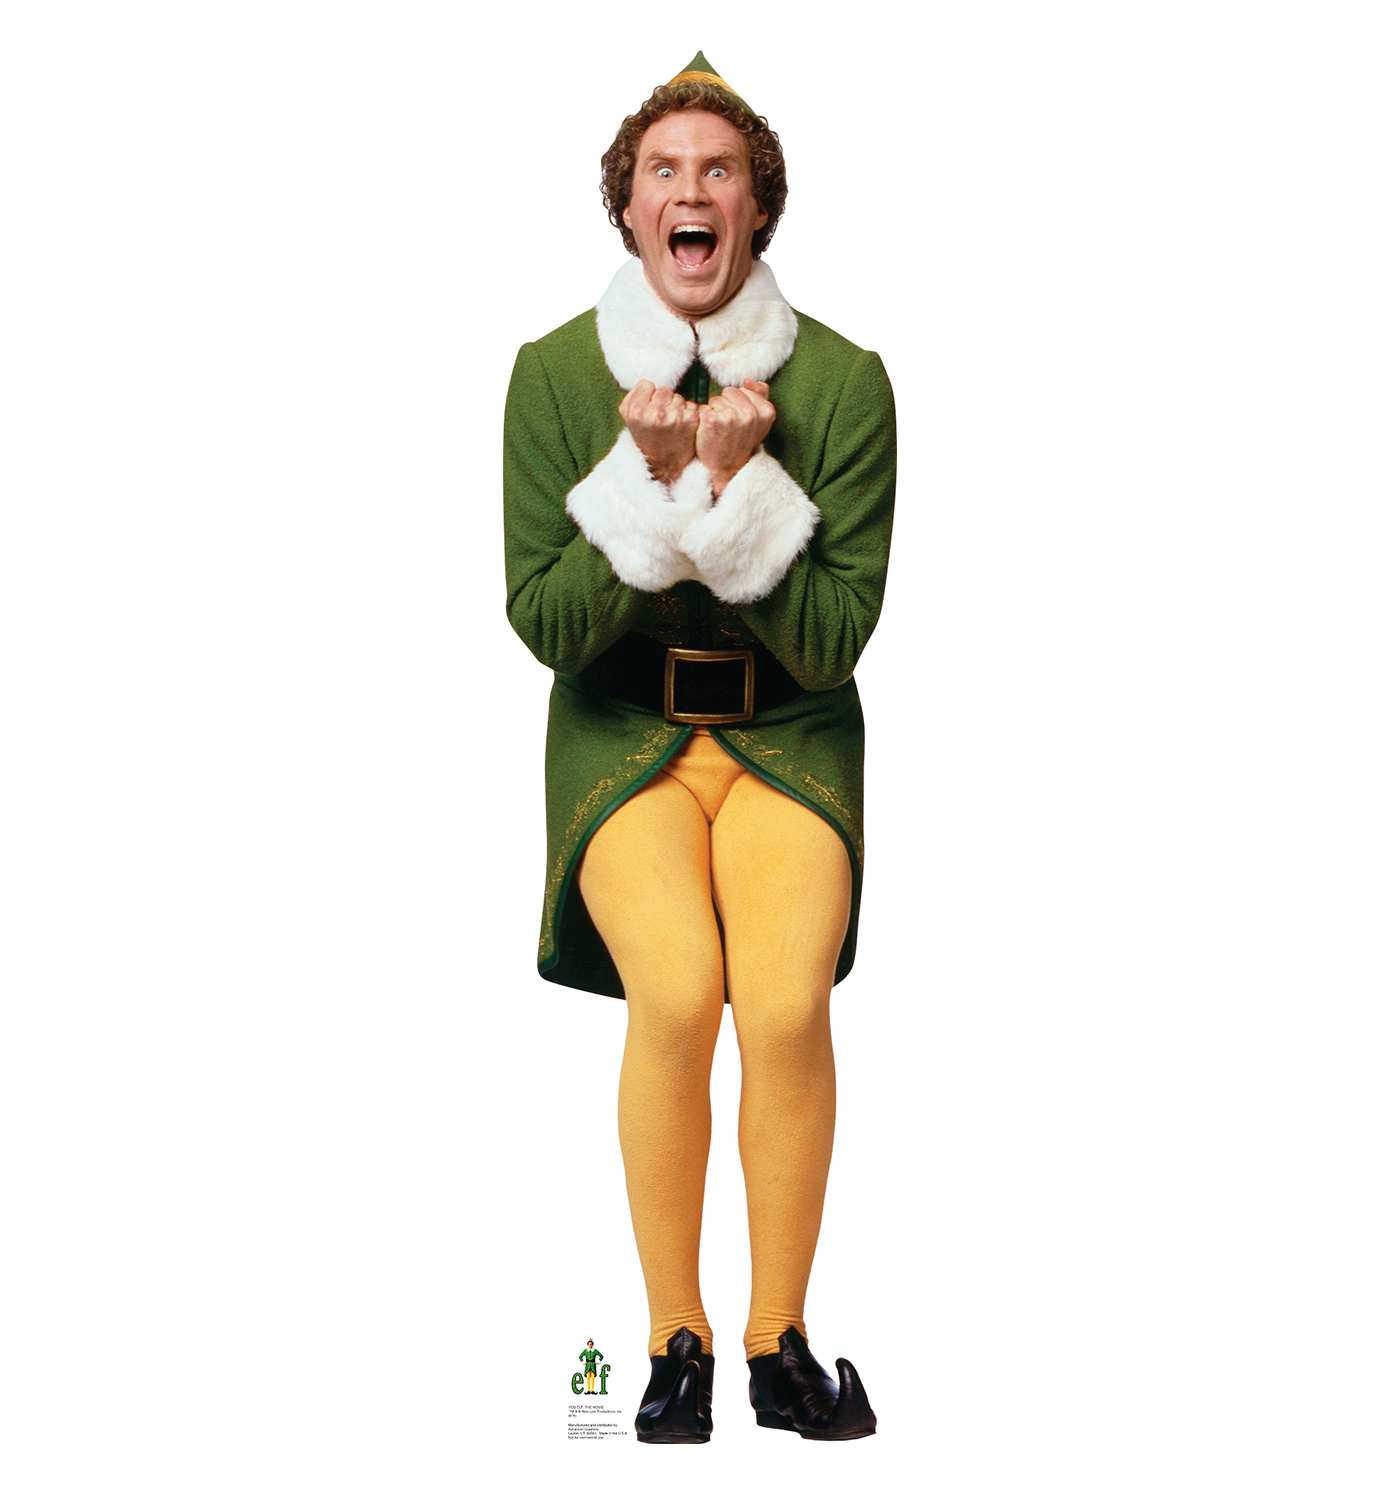 Wanna see a 10-foot Buddy the Elf sculpture?  Made out of Rice Krispie treats??  Sure ya do.